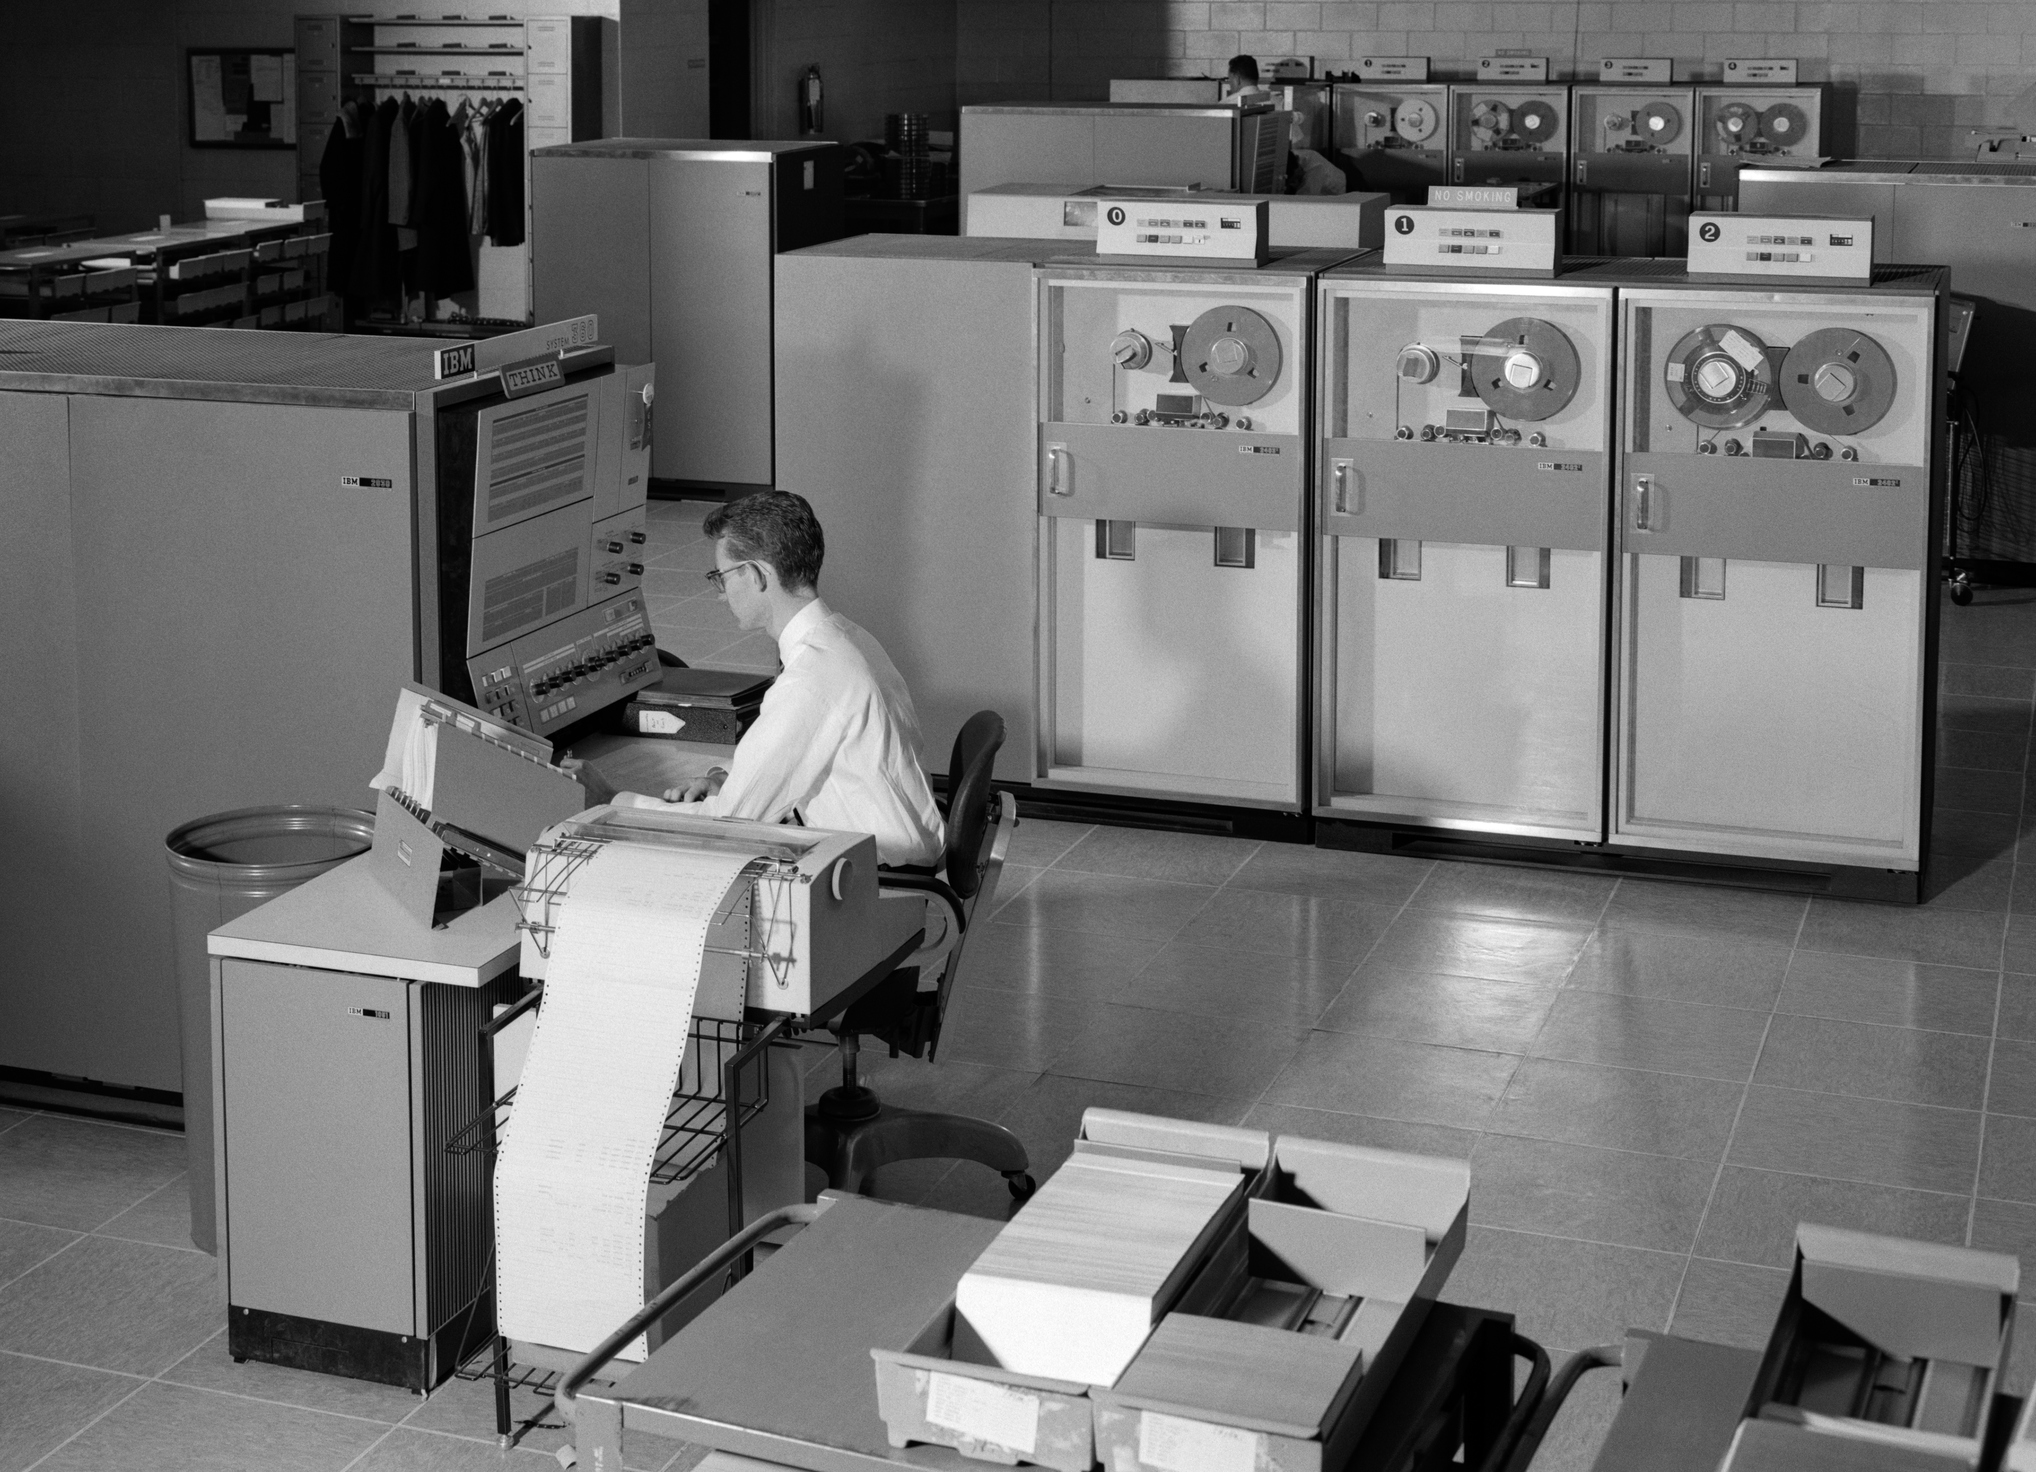 LzLabs launches product to move mainframe COBOL code to Linux cloud